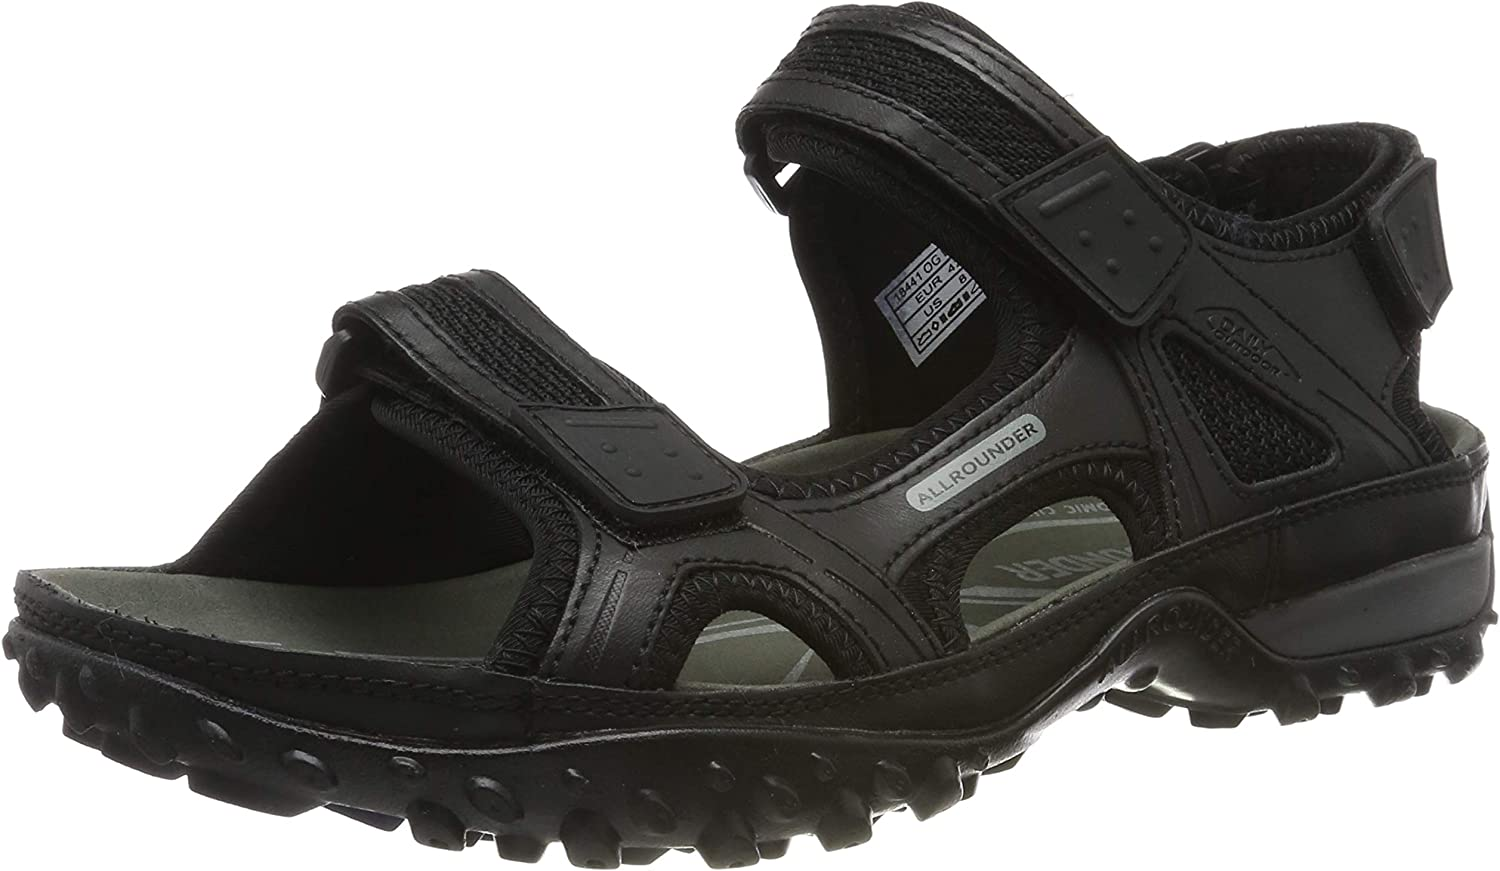 Mephisto Men's Regent Hiking Sandals